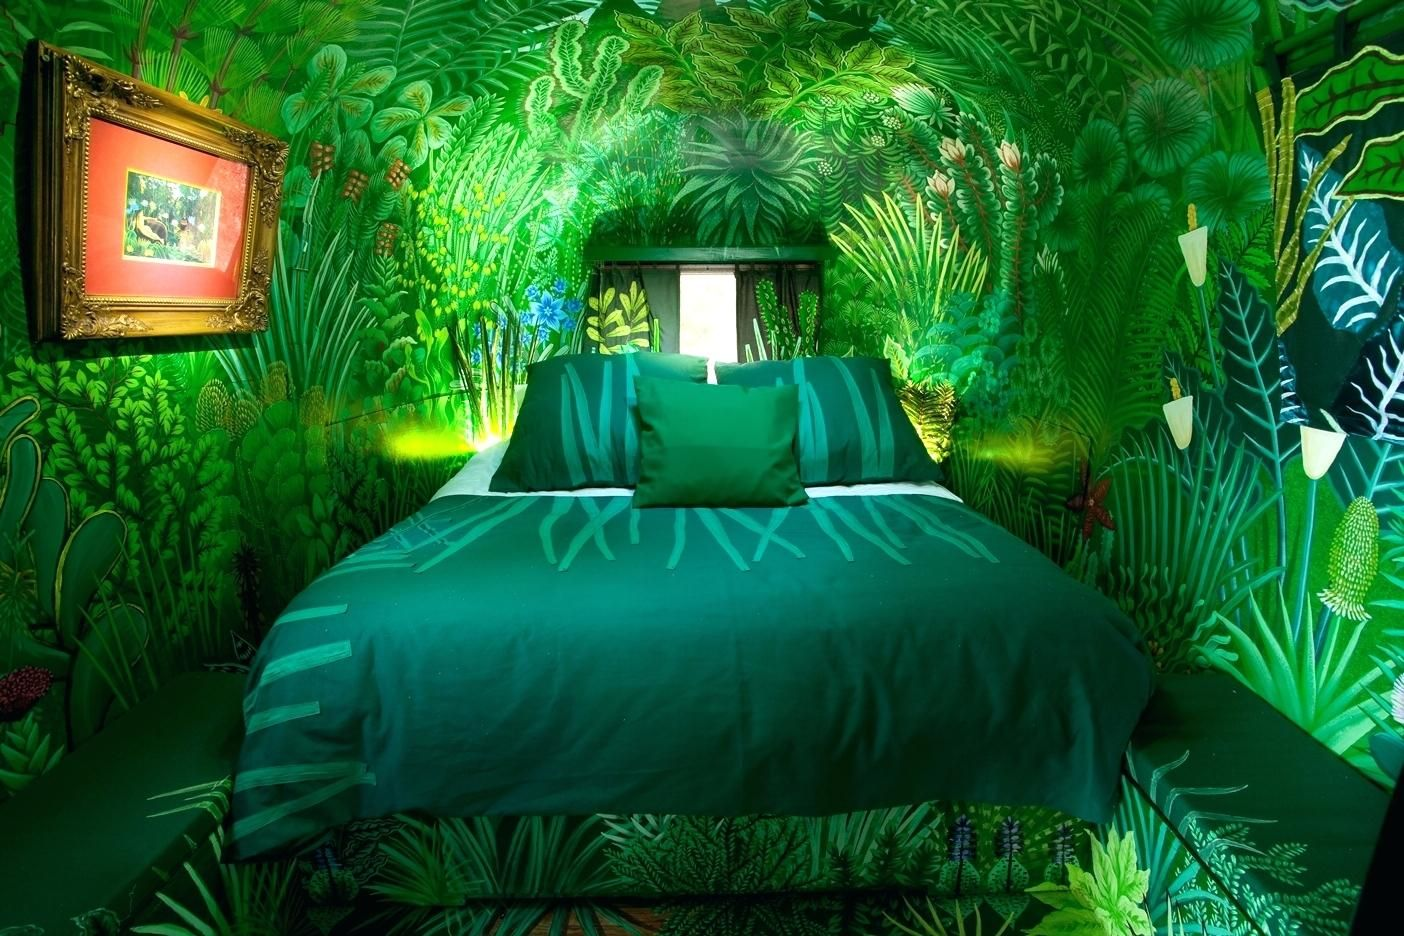 Forest Bedroom Wallpaper For Walls Jungle Themed Bedrooms Kids Old